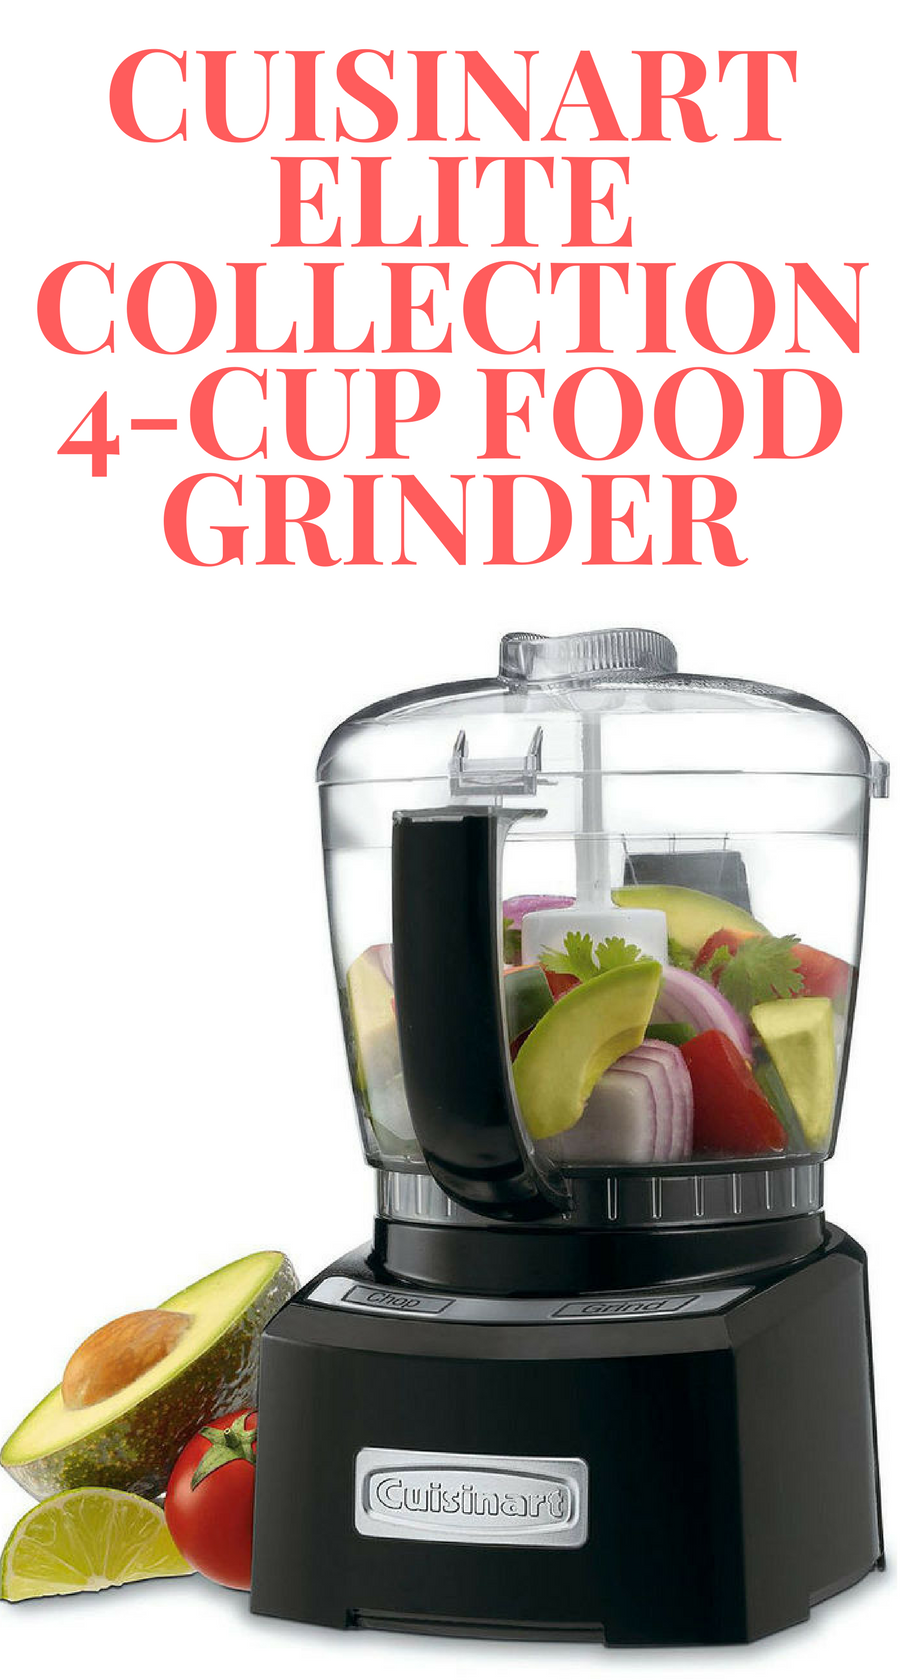 The Cuisinart Elite Collection 4-Cup Food Grinder makes quick work ...